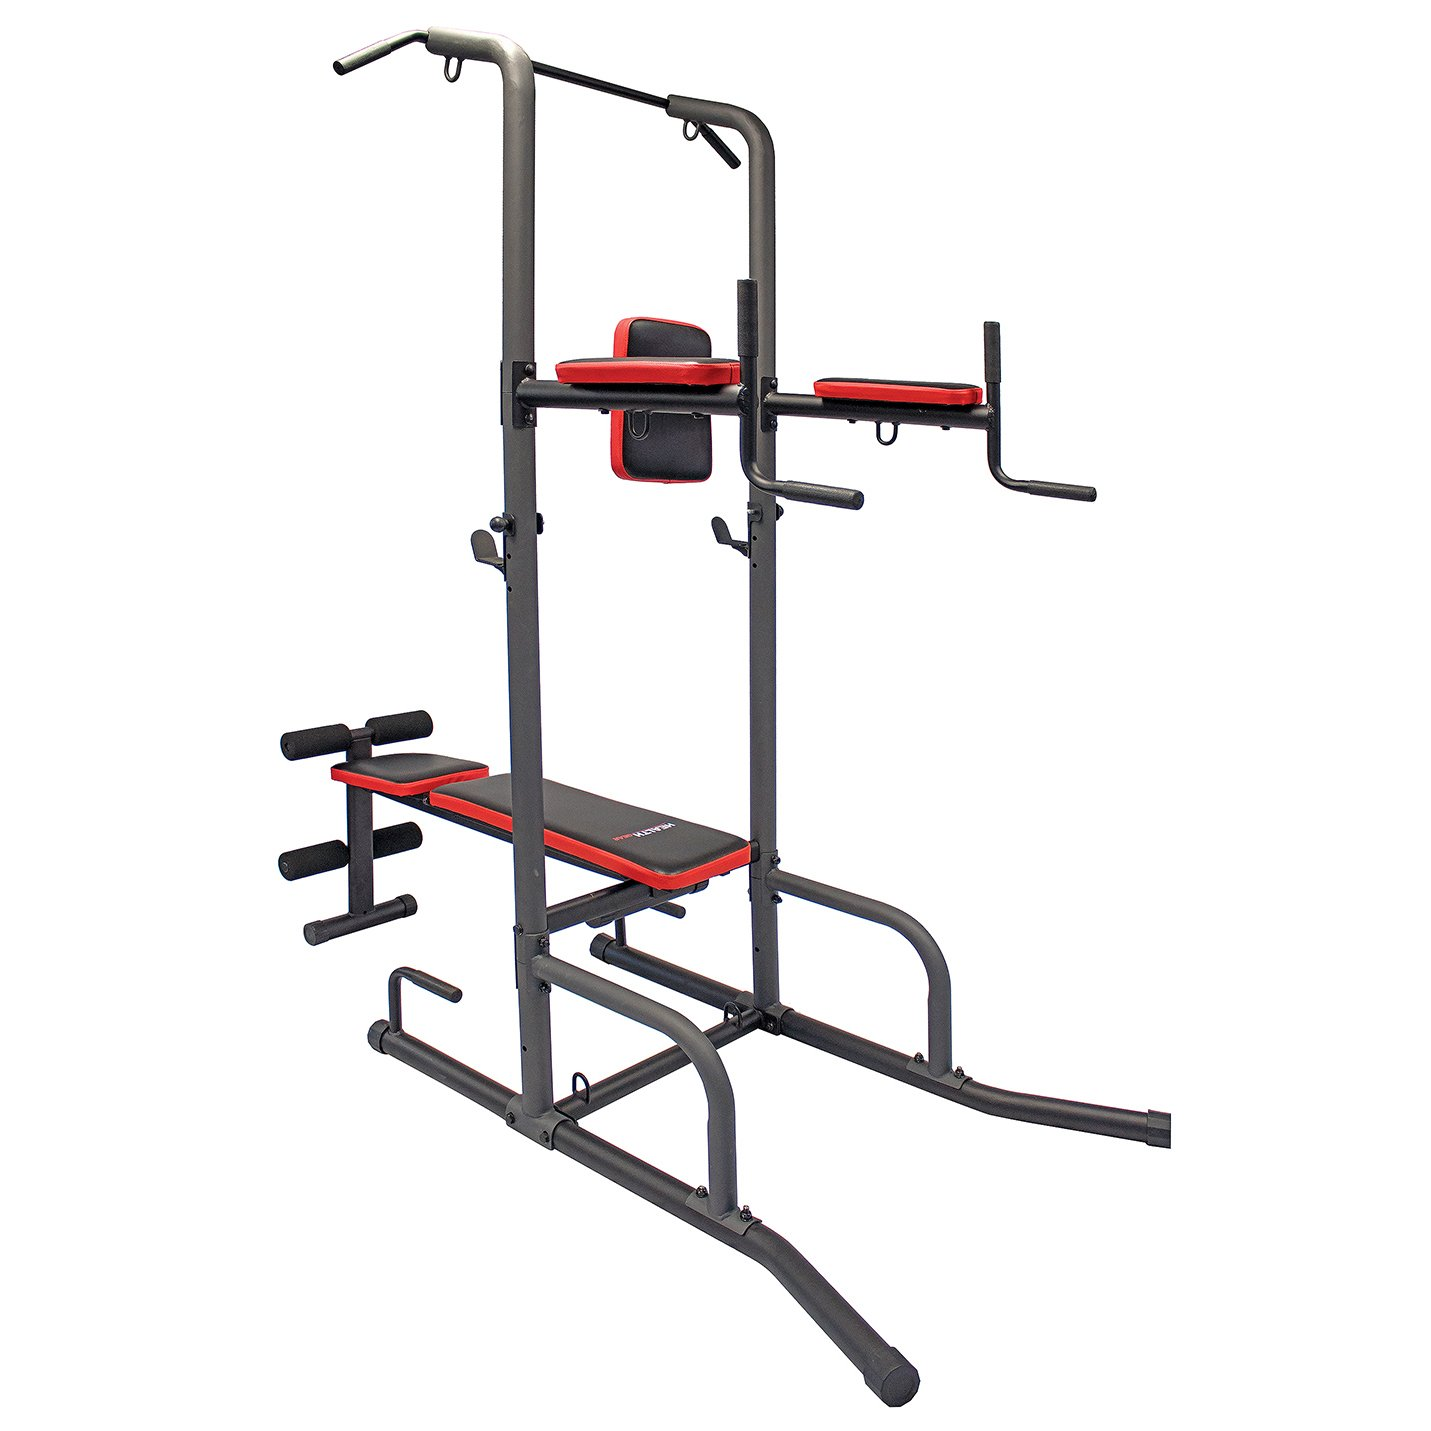 Health Gear CFT2.0 Functional Fitness Gym Style Training System